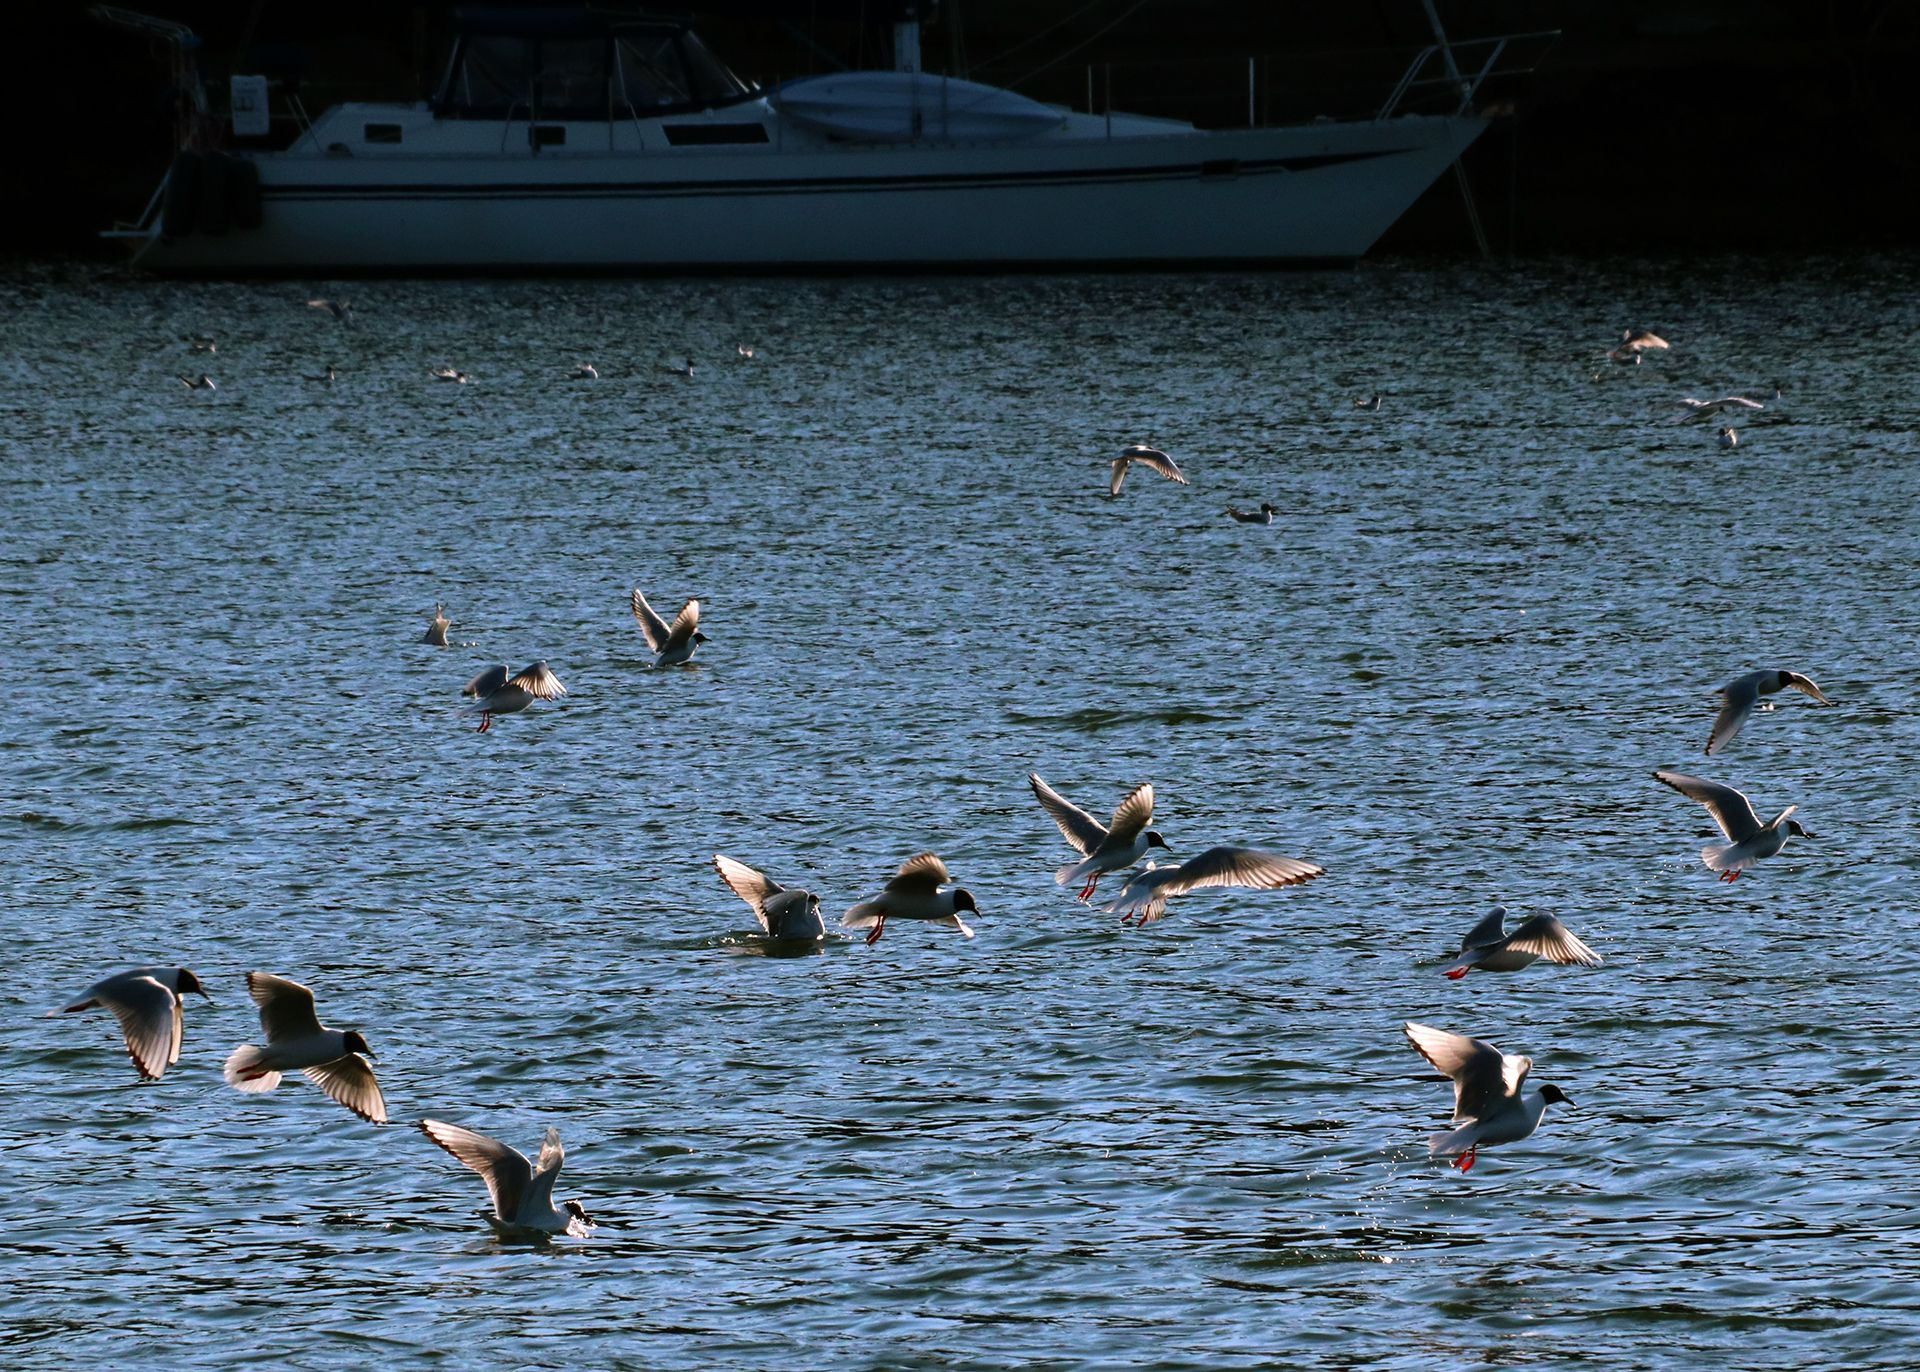 A flock of gulls in various states of diving into the water.